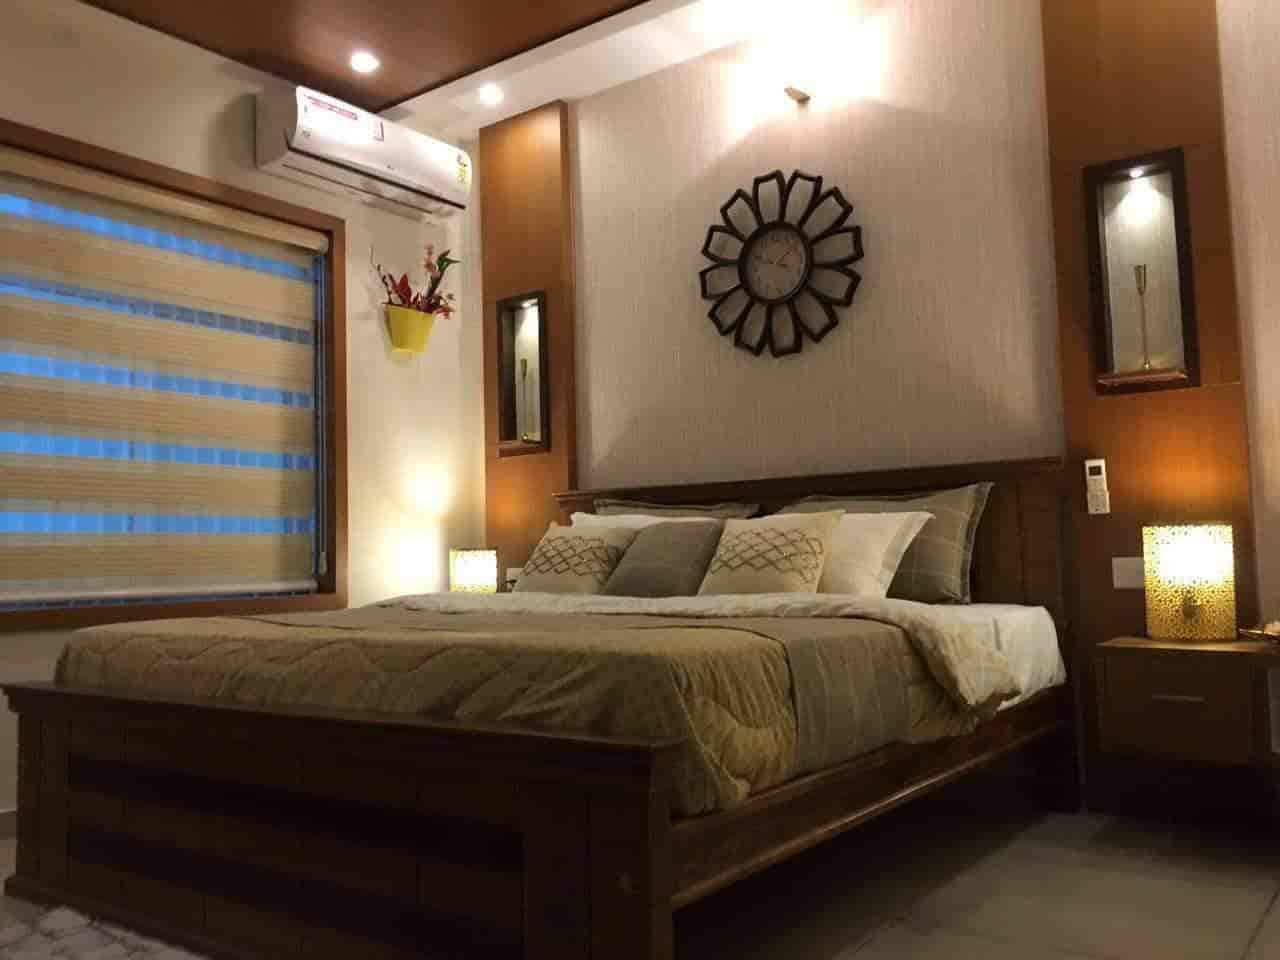 Top 20 Interior Designers For Bedroom In Kannur Best Bedroom Interior Designers Justdial